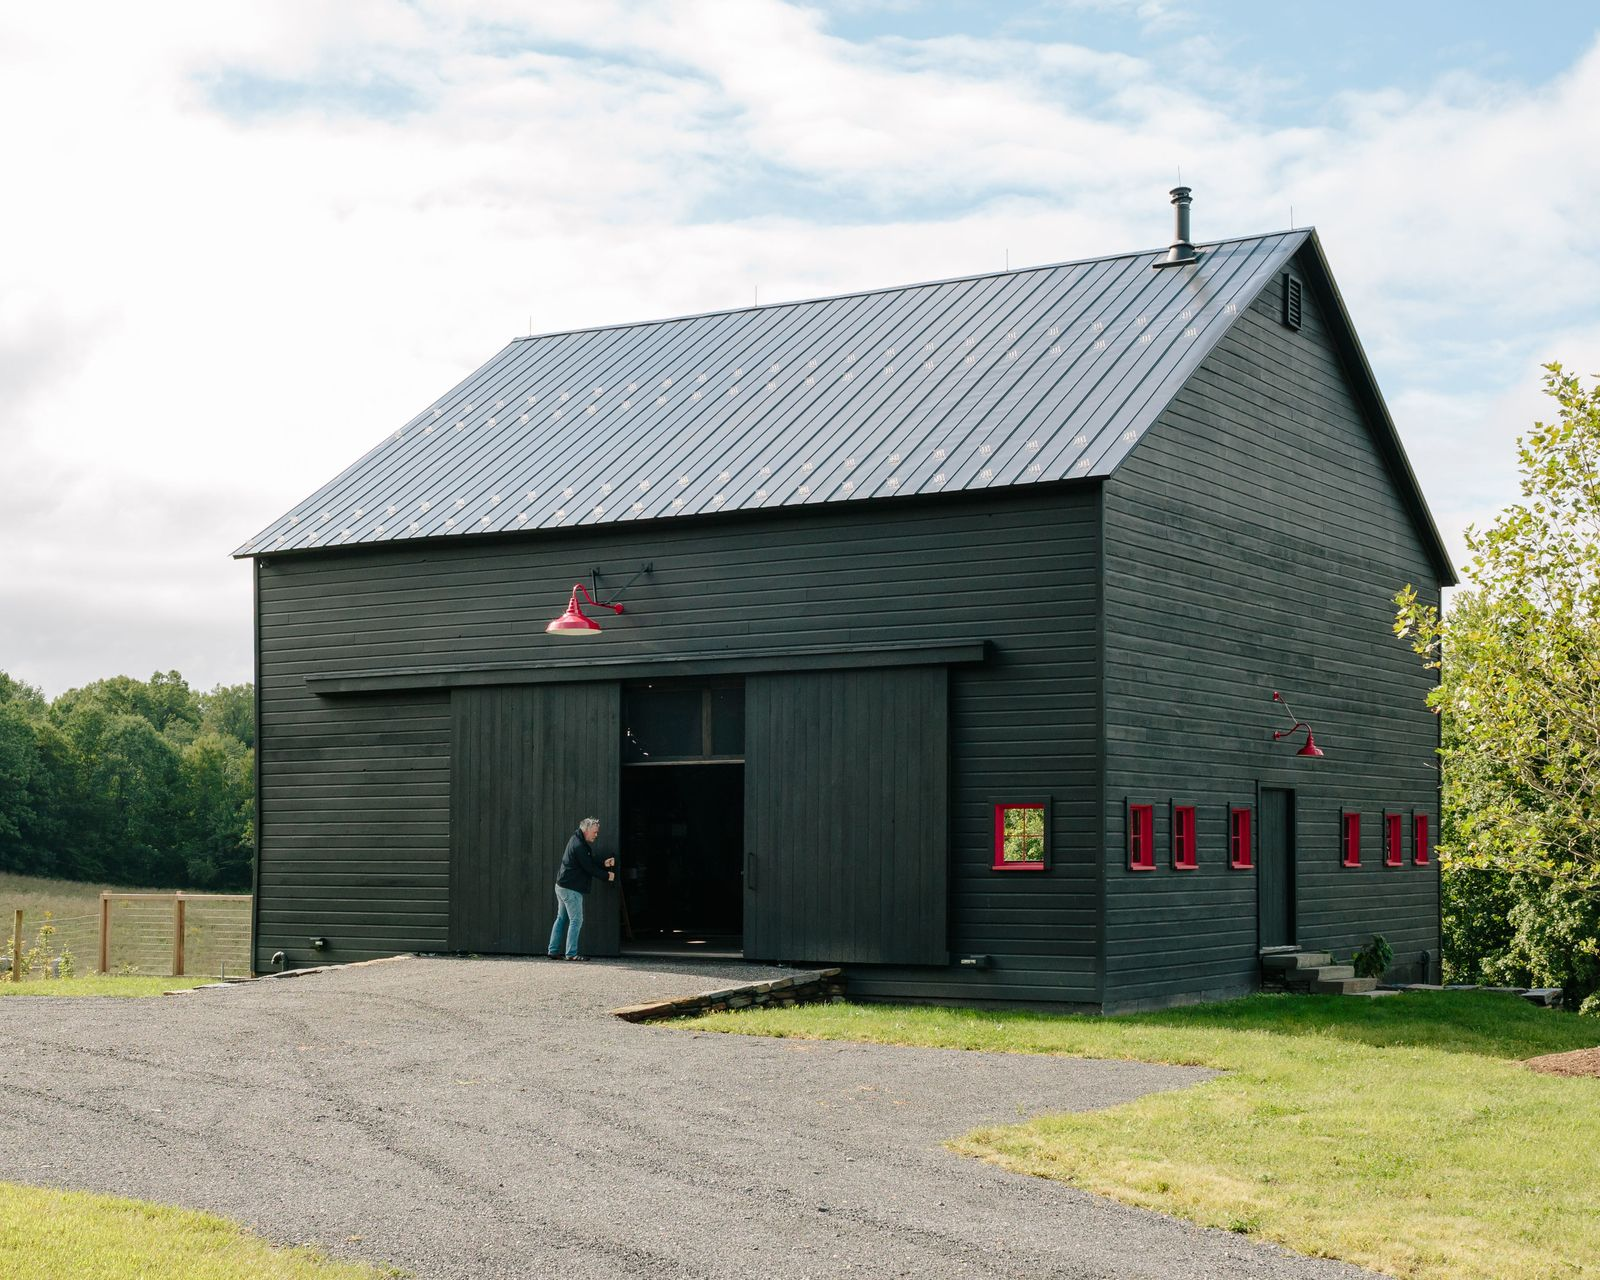 Dwell a passive house and sauna tower join a 19th century barn in the hudson valley